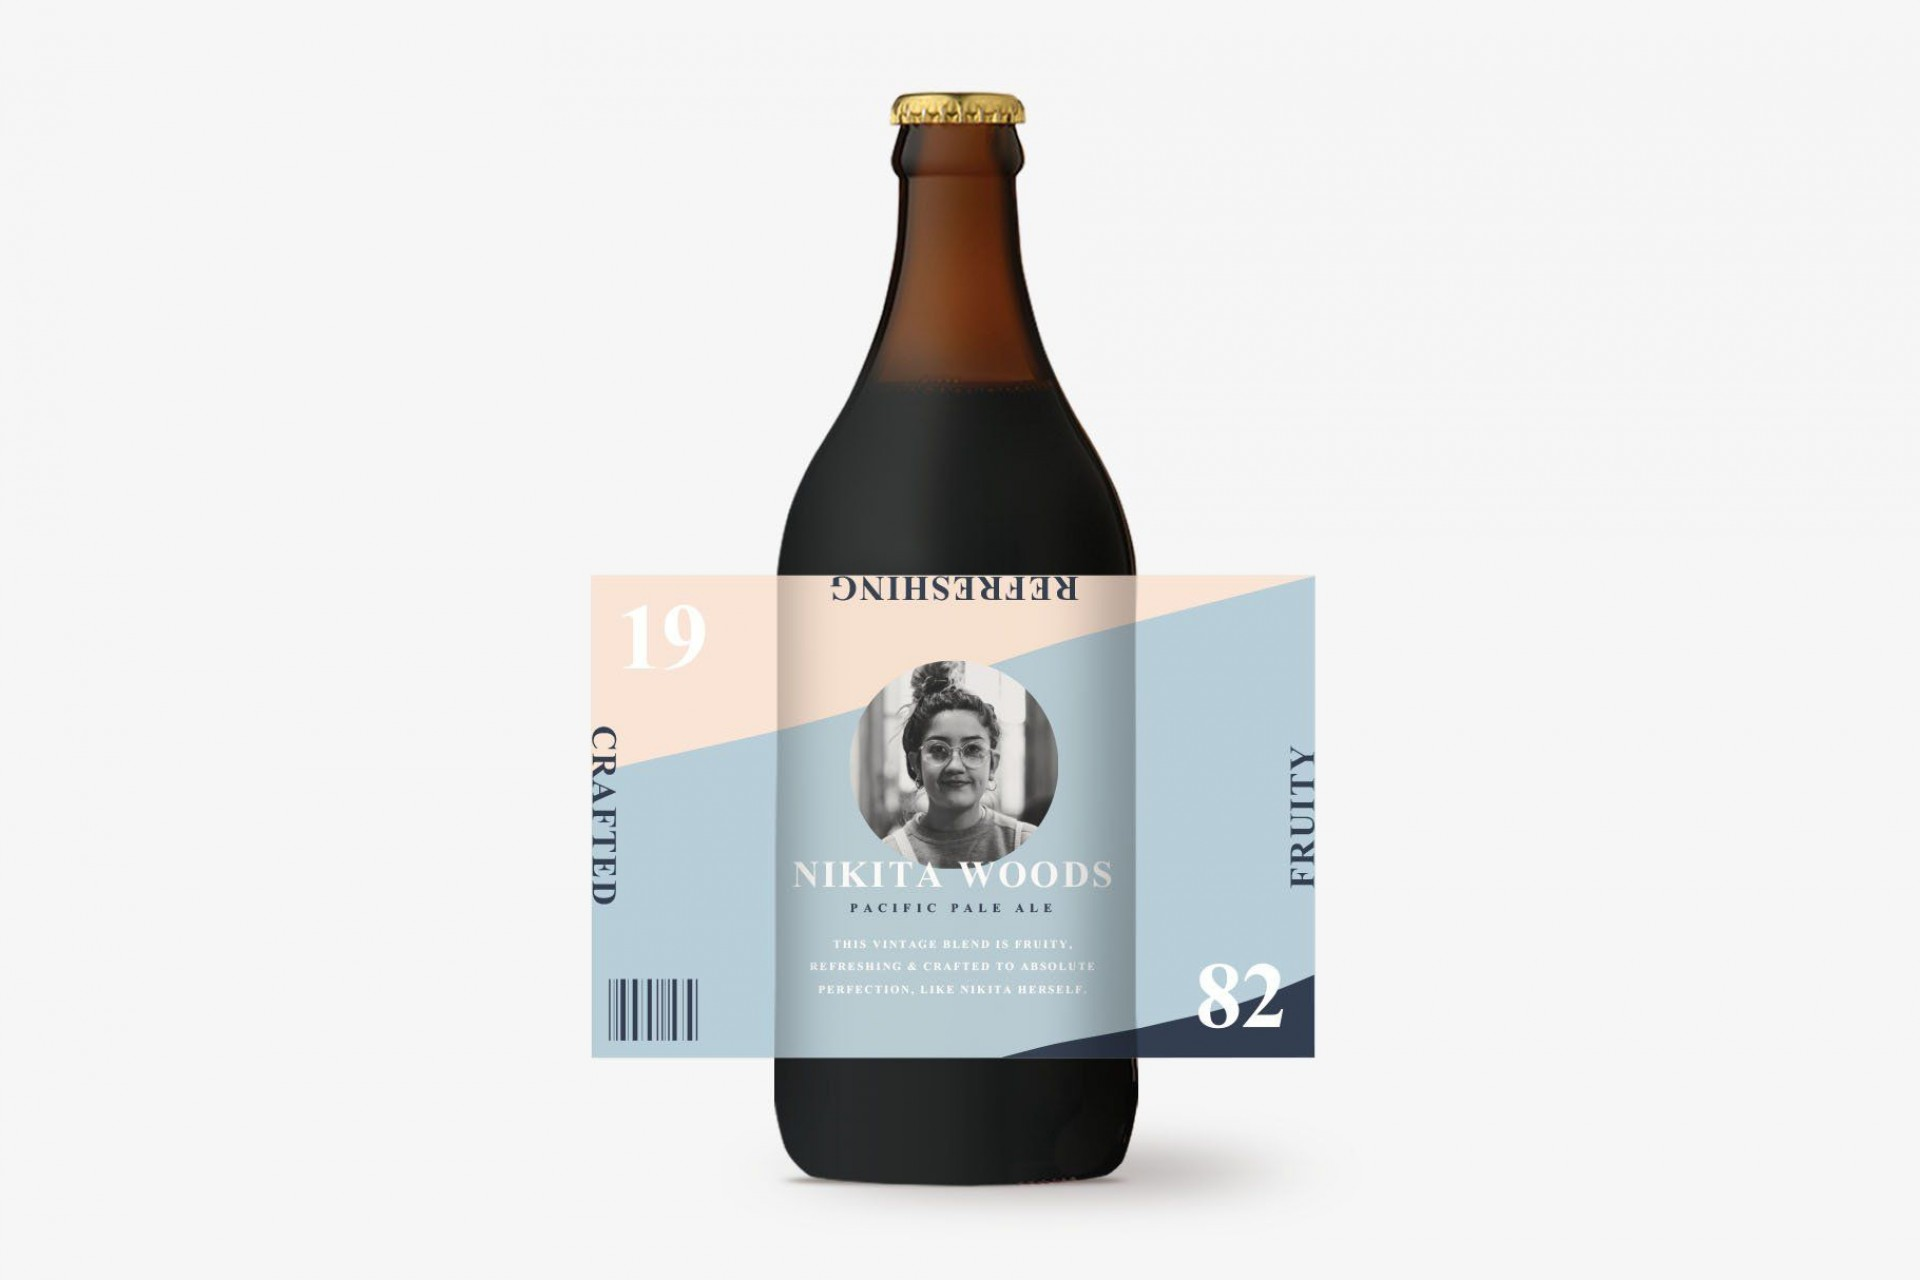 008 Stupendou Beer Bottle Label Template Word Picture  Free1920